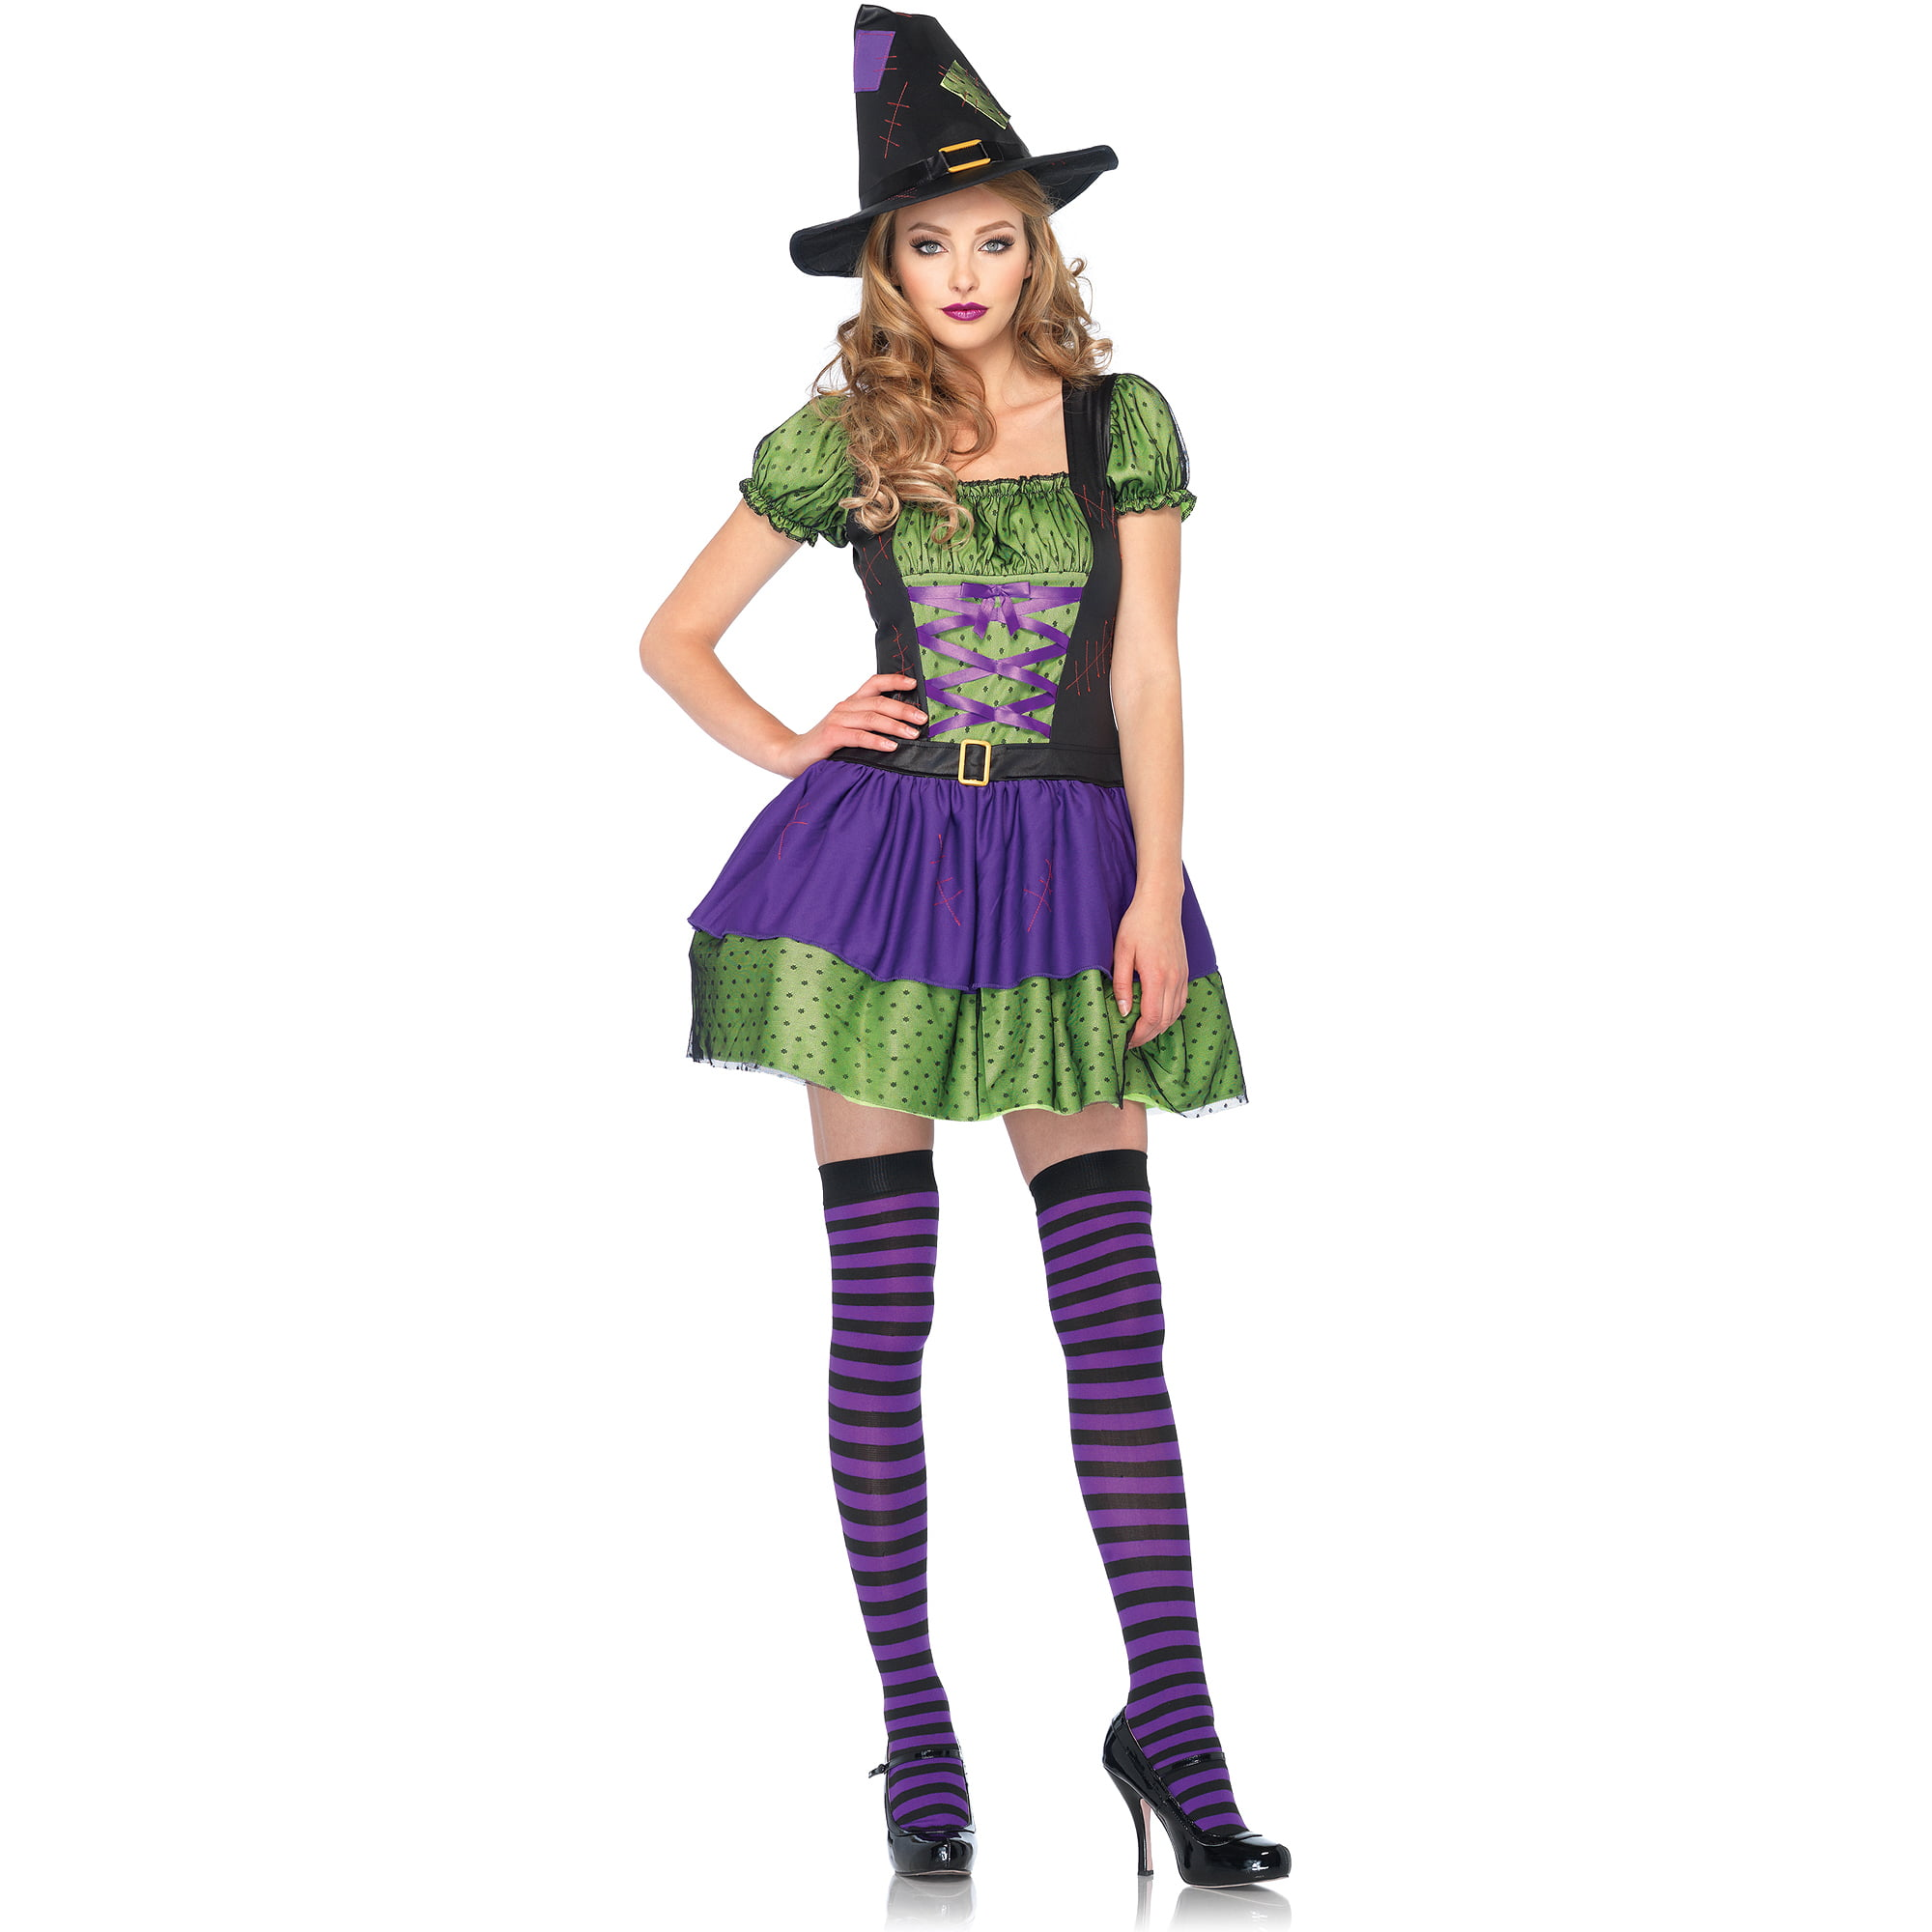 hocus pocus witch adult halloween costume - walmart